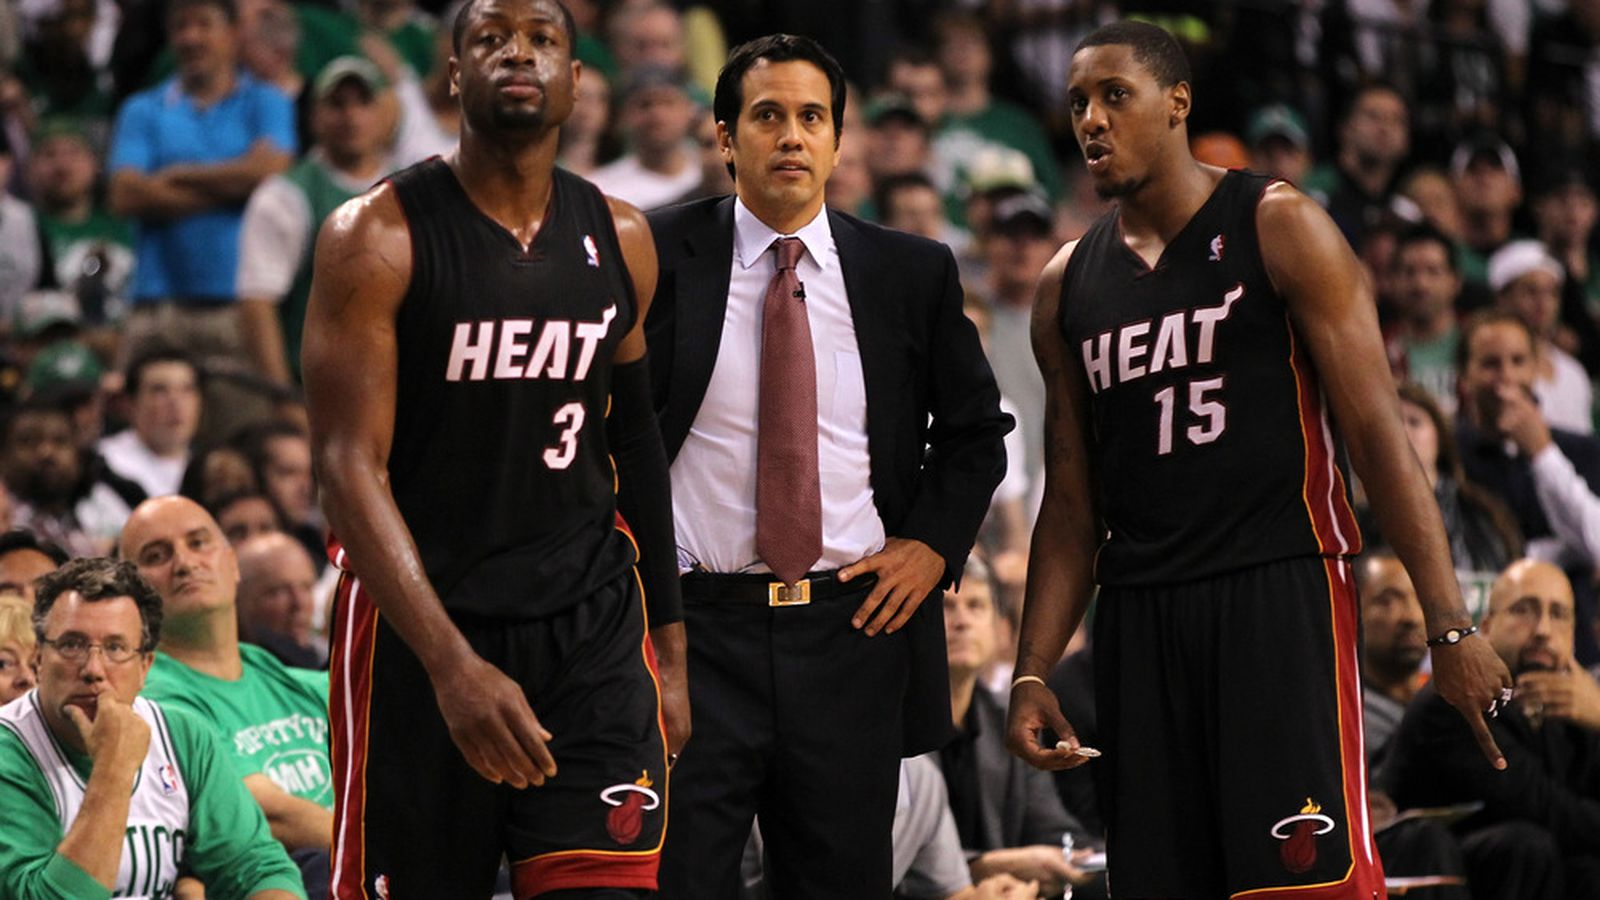 Wading Into Rough Waters: Miami Falls, Series Back Even